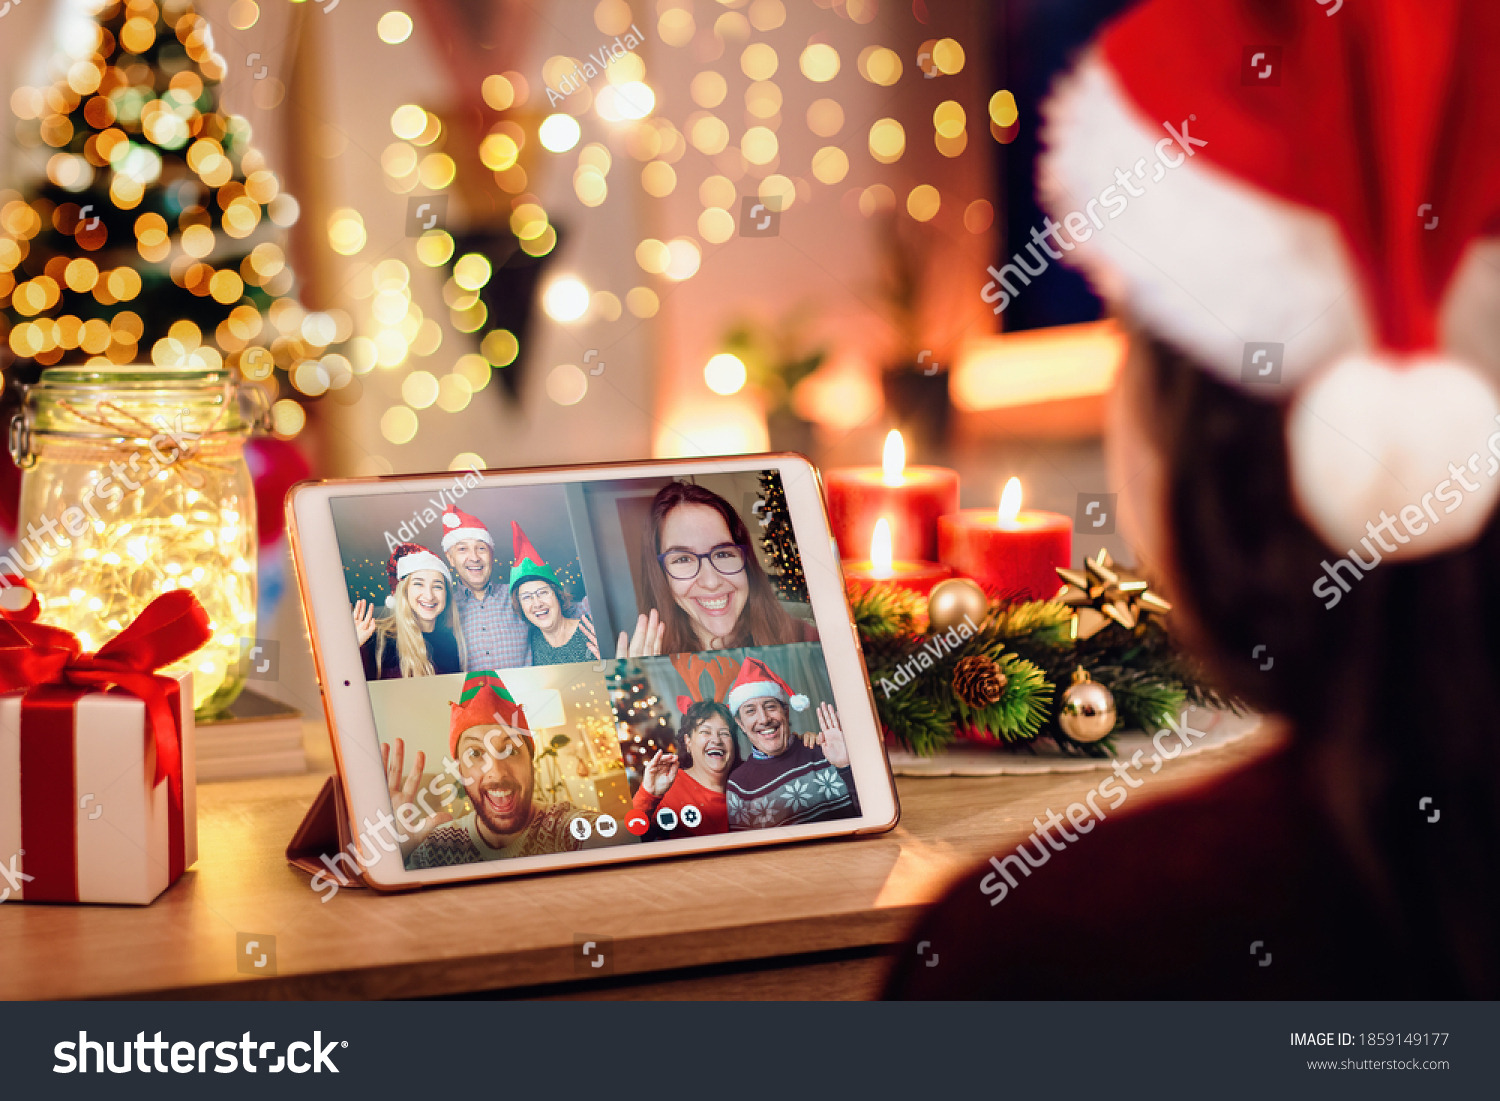 Girl having a Christmas video call with her happy family. Concept of families in quarantine during Christmas because of the coronavirus. Xmas still life with a tablet in a cozy room #1859149177